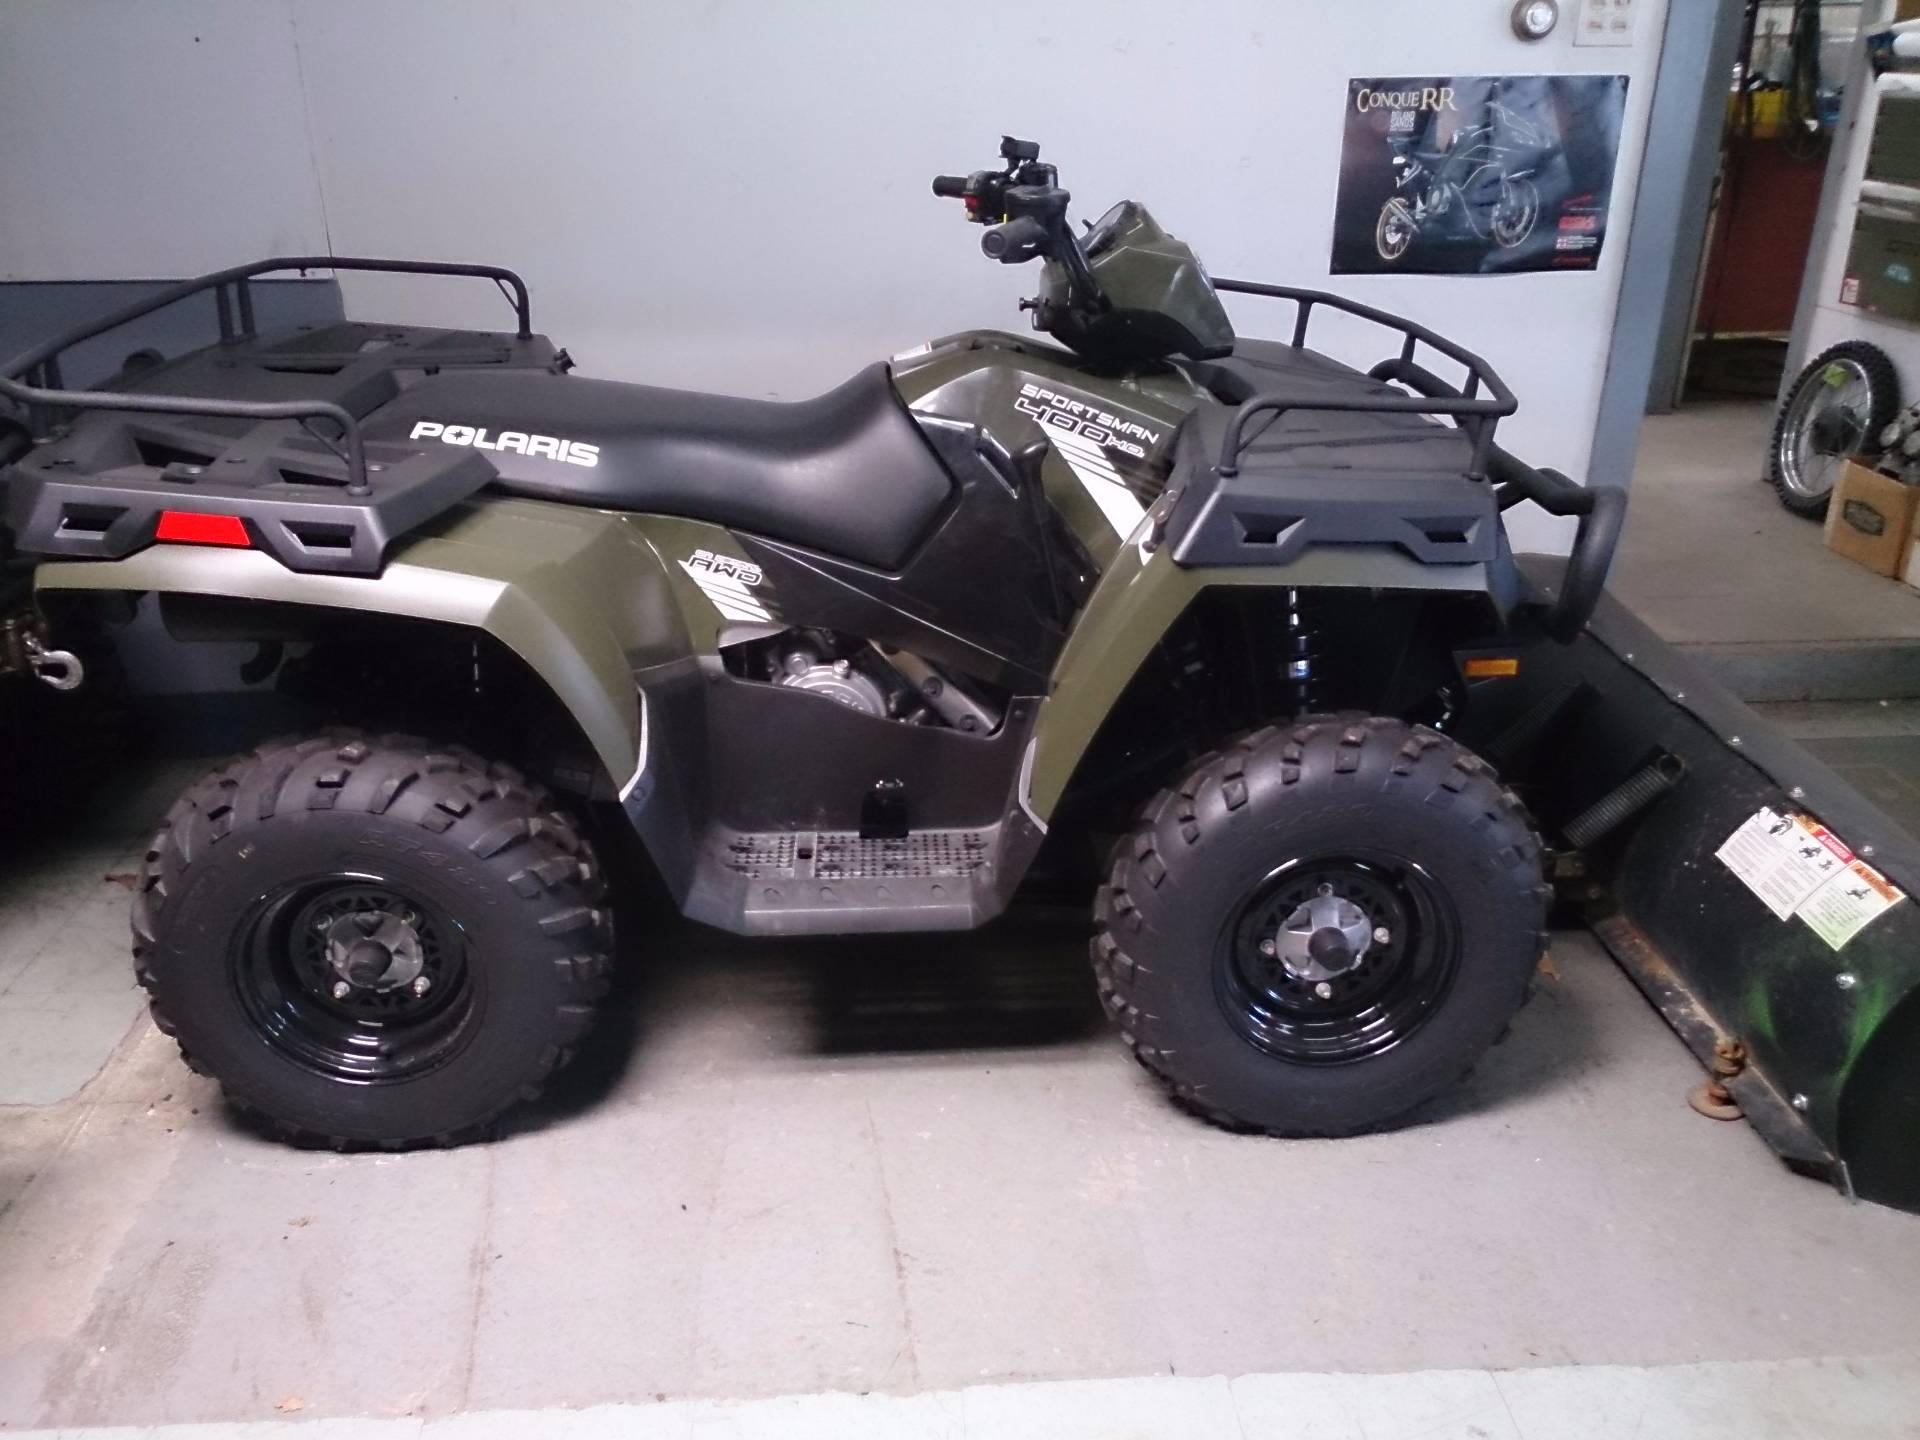 2014 Polaris Sportsman® 400 H.O. SE in Sterling, Illinois